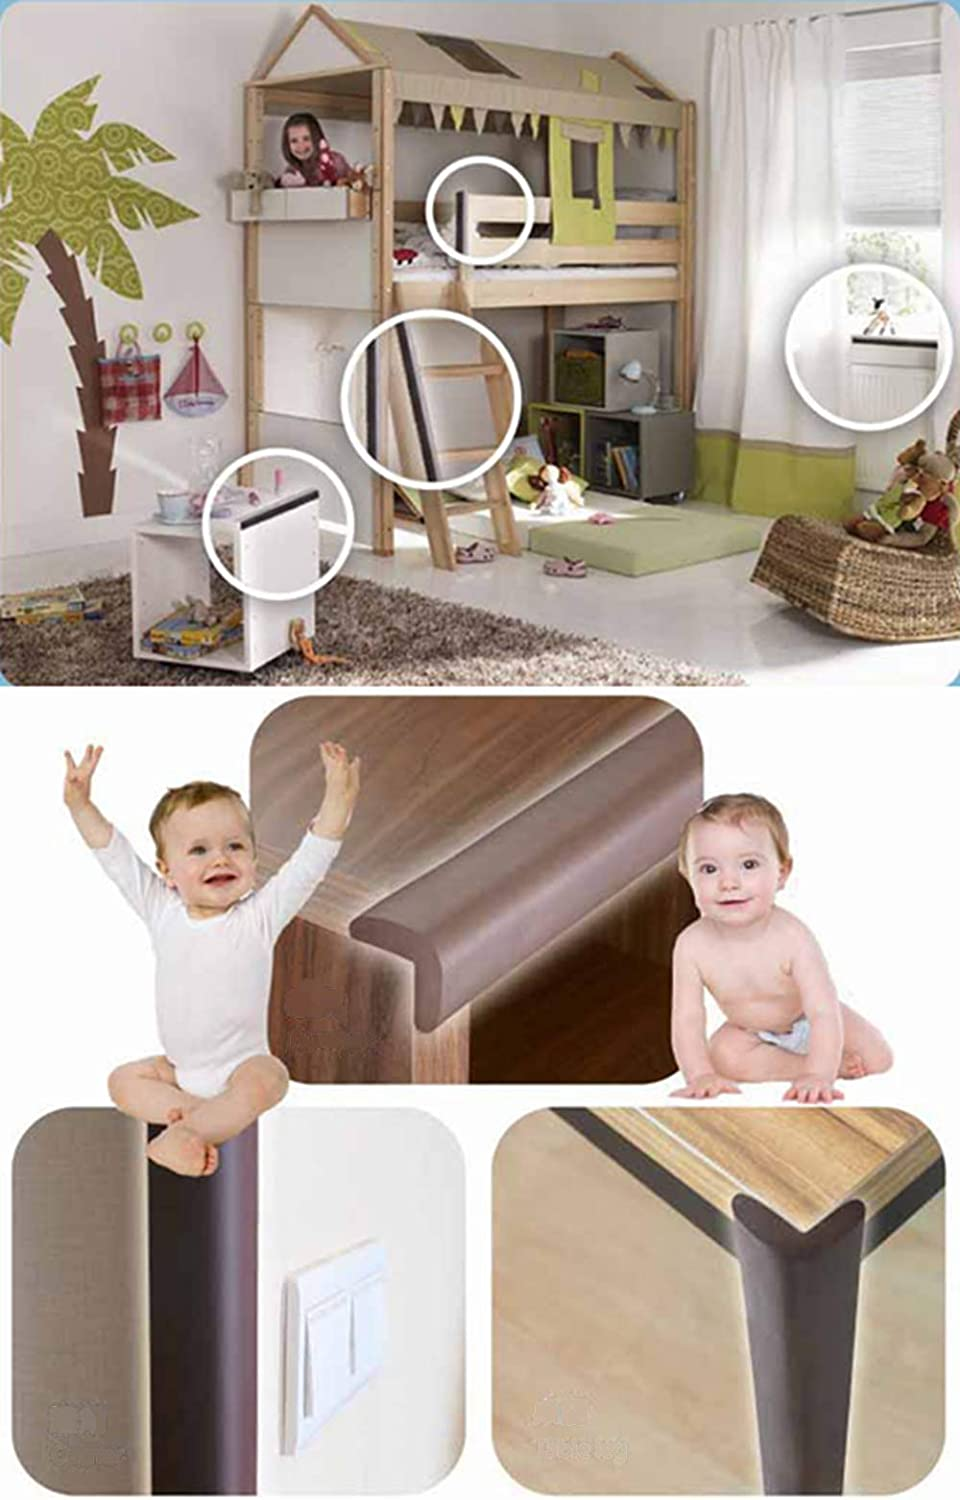 TV Bench Child Foam Corner Protectors L Shaped 6m Baby Proofing with 8 Corner Guards Baby Safety Edge Protector Door Chair Tuokay Bed Suitable for Edge of Table Furniture Black Wall